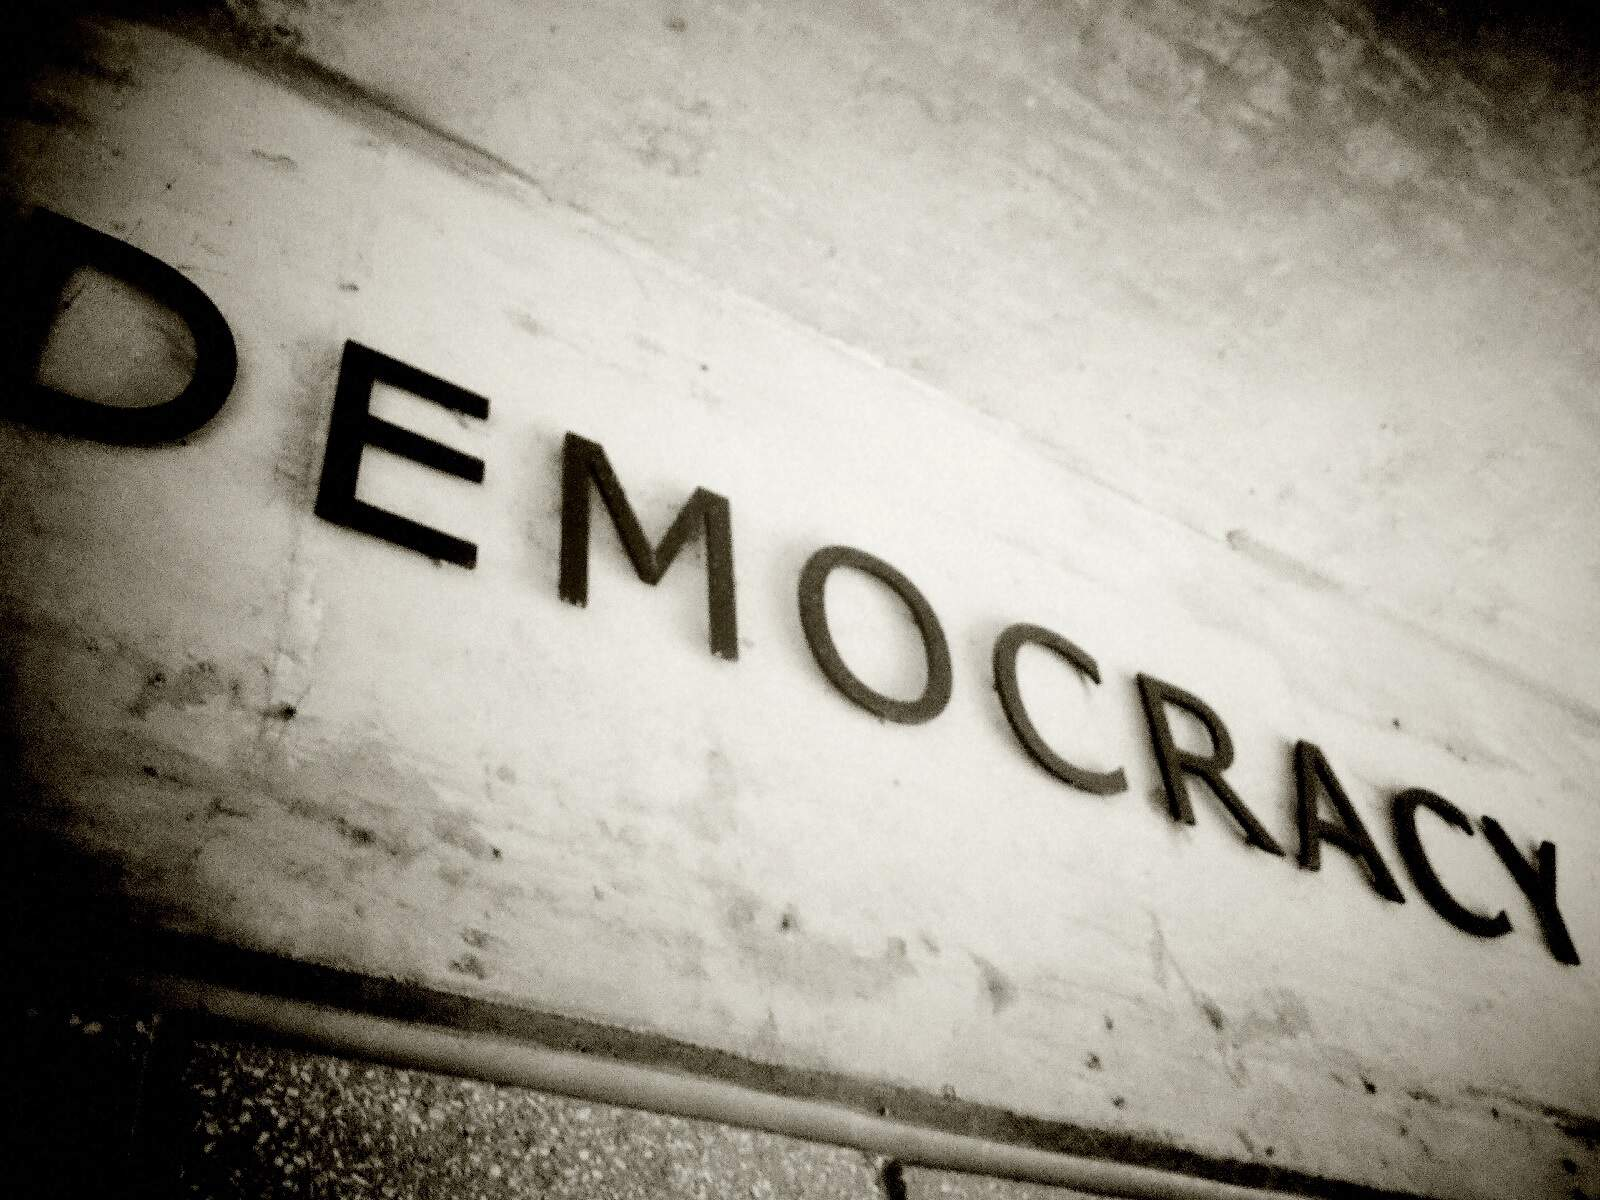 The global retreat of democracy and the advance of autocracy matter to Australia (Matthew/Flickr)